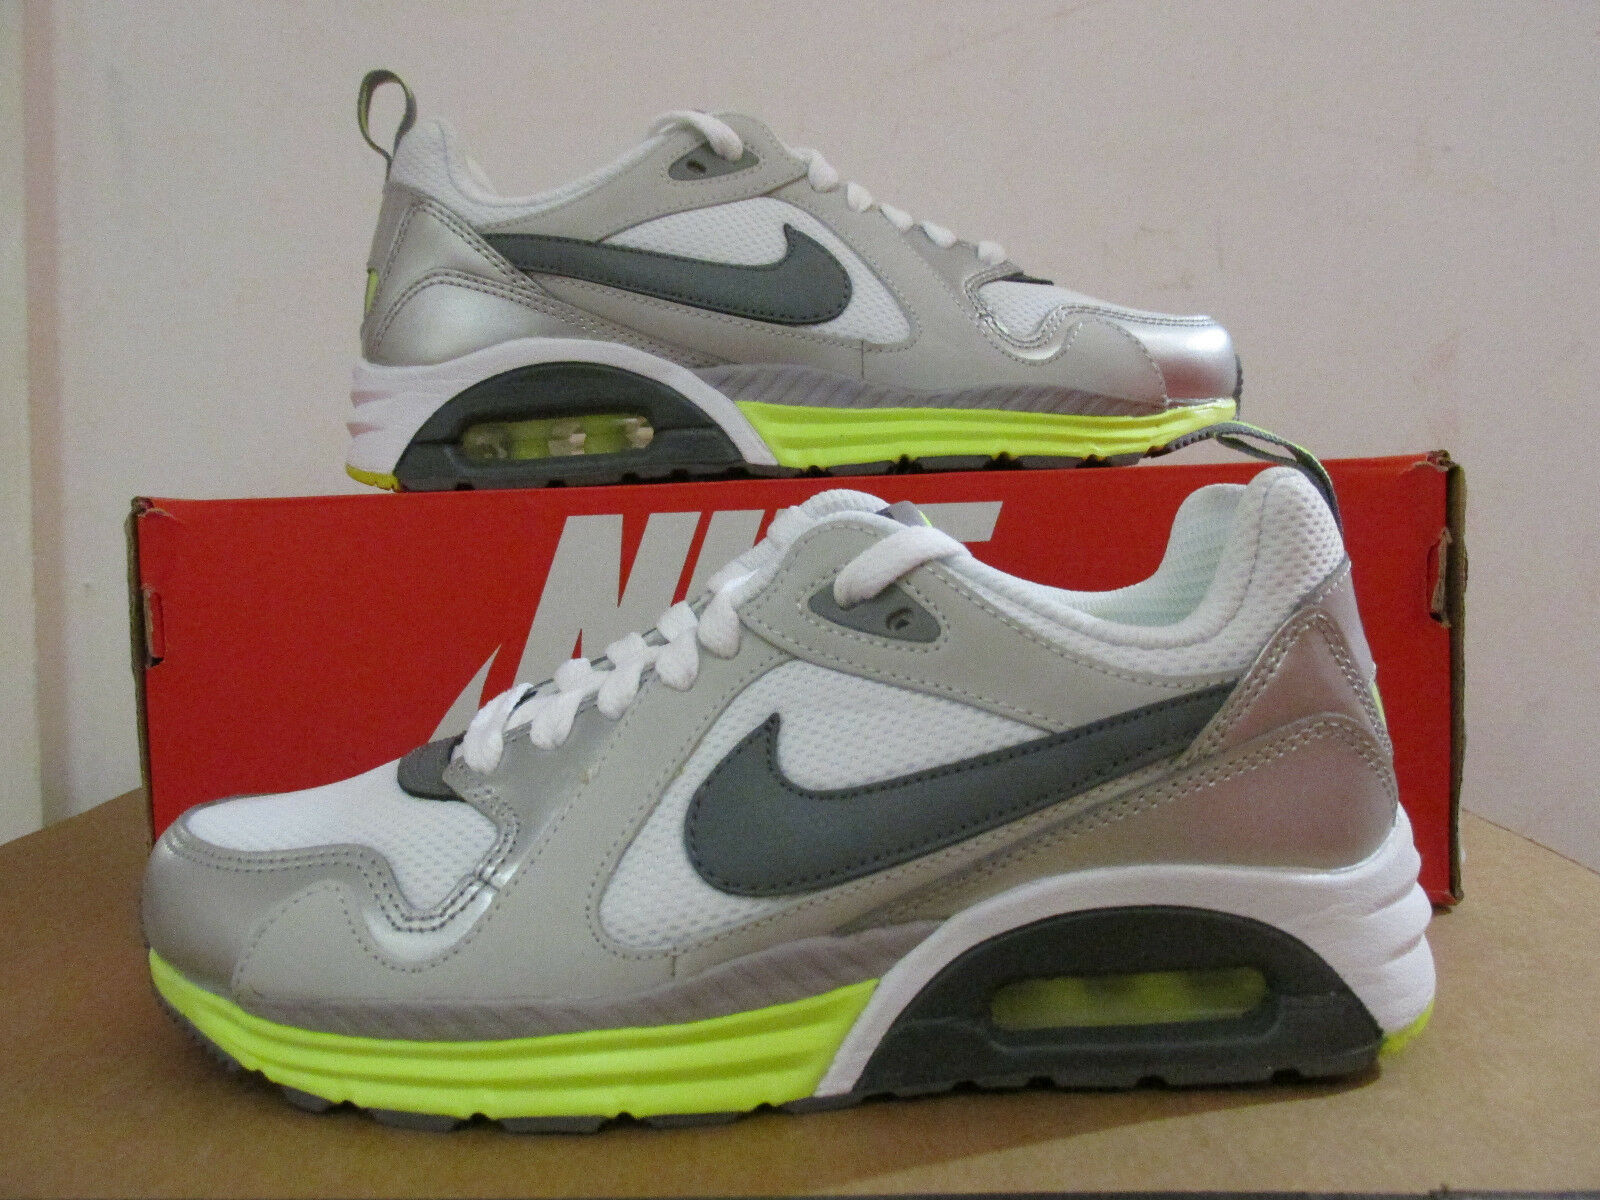 Nike Air Max Trax Womens trainers 631763 100 shoes sneakers CLEARANCE